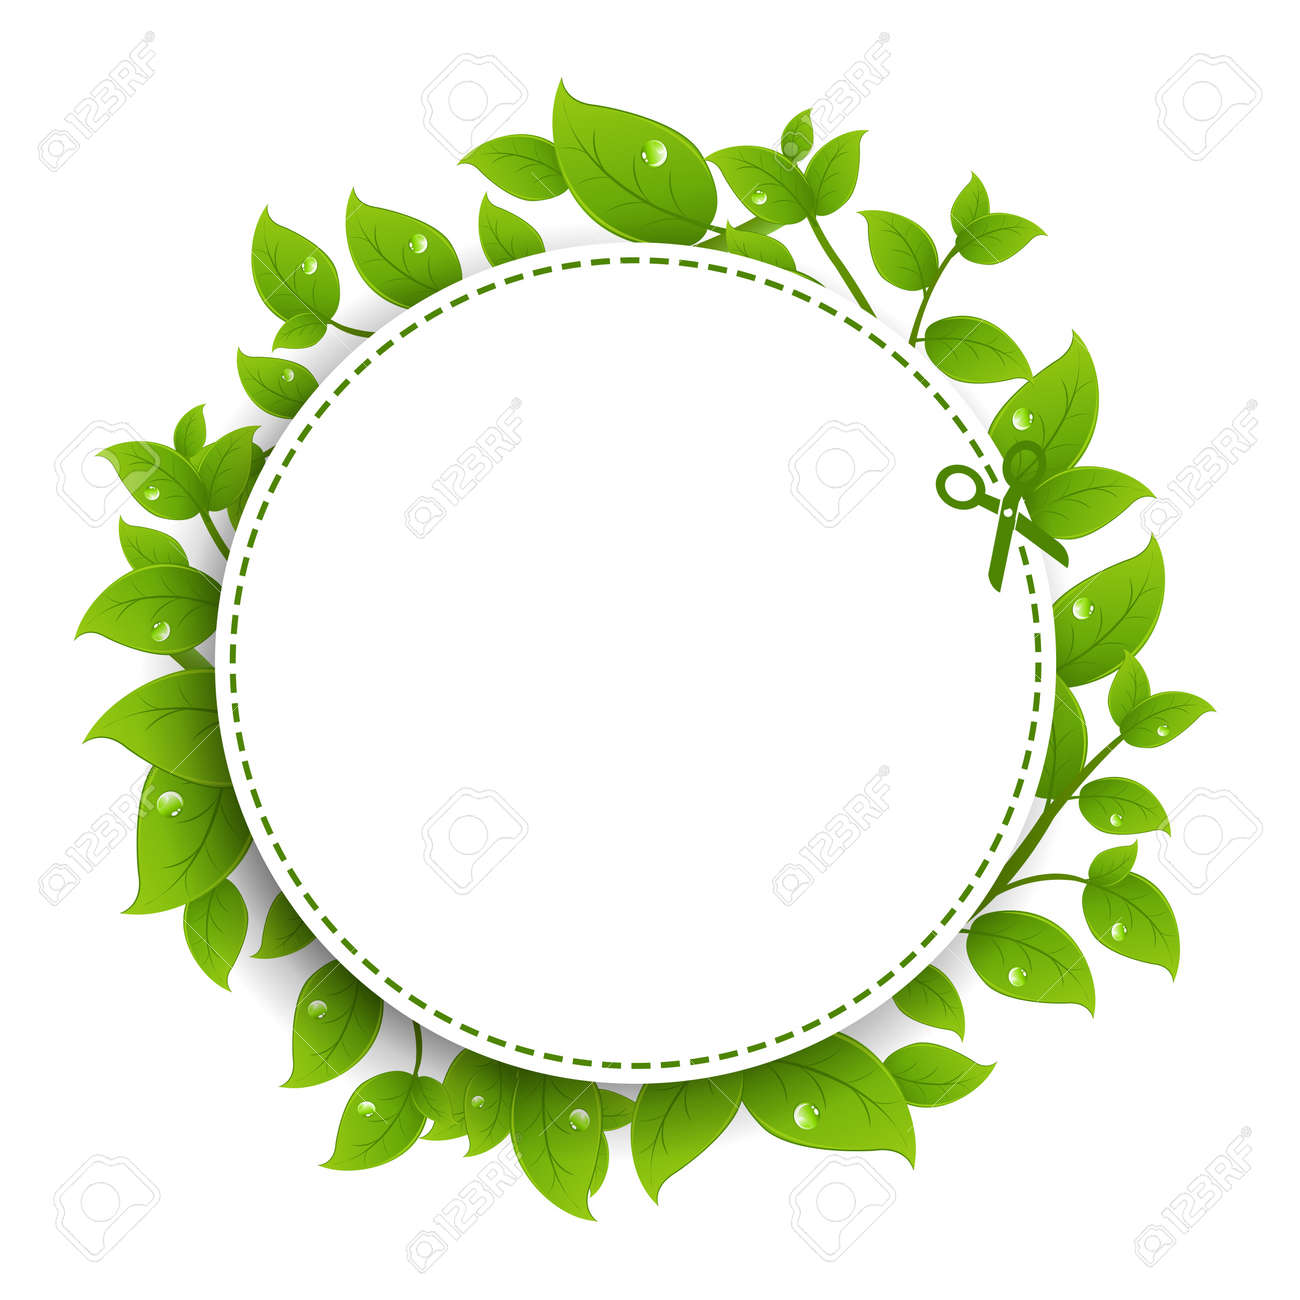 Announcement Coupon With Green Leaves With Gradient Mesh, Isolated On White Background, Vector Illustration Stock Vector - 17779038